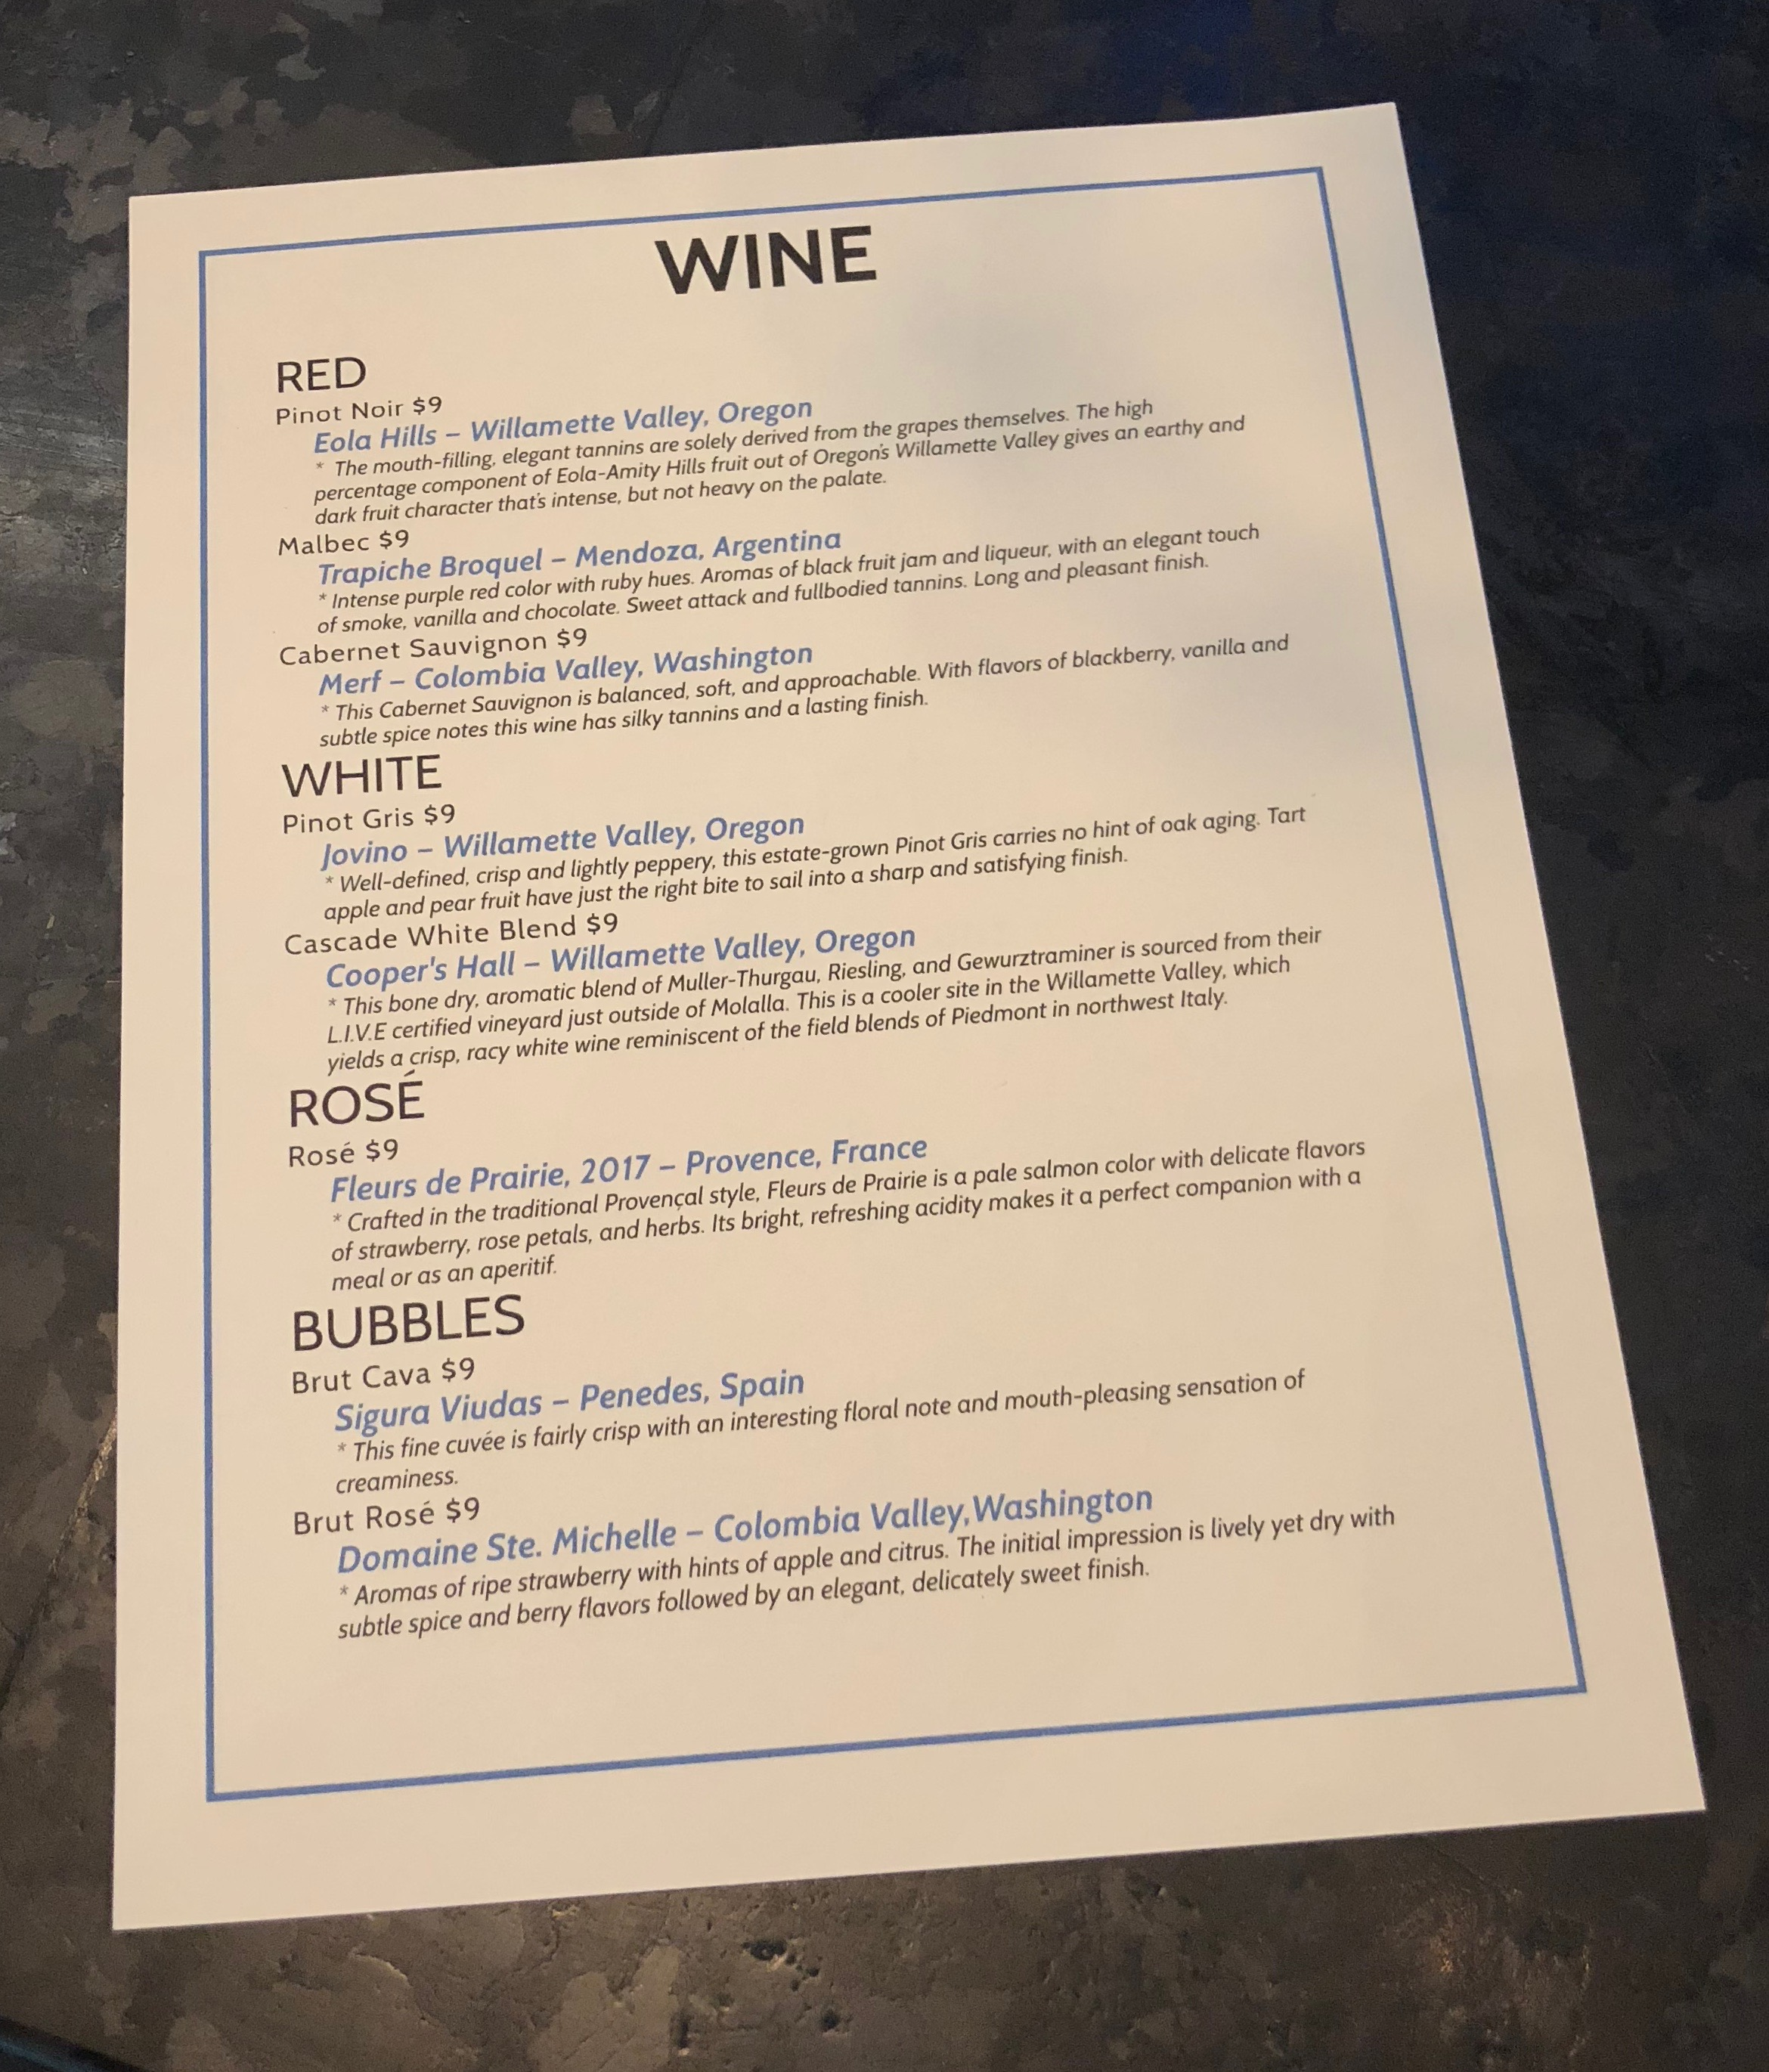 The Wine Menu at Von Ebert Brewing - East.